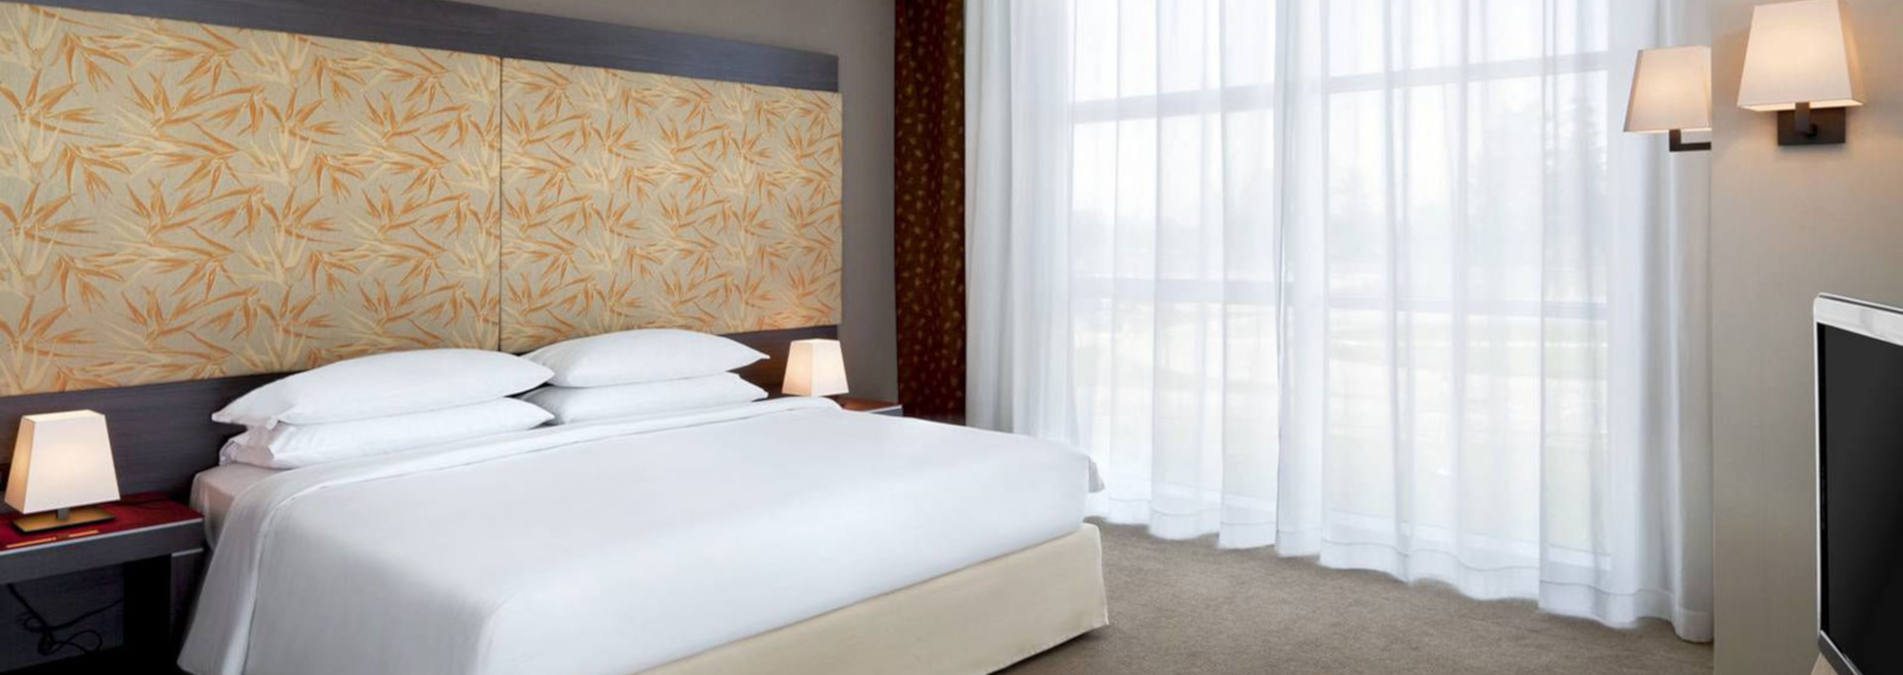 Hotels - Featured Banner Image